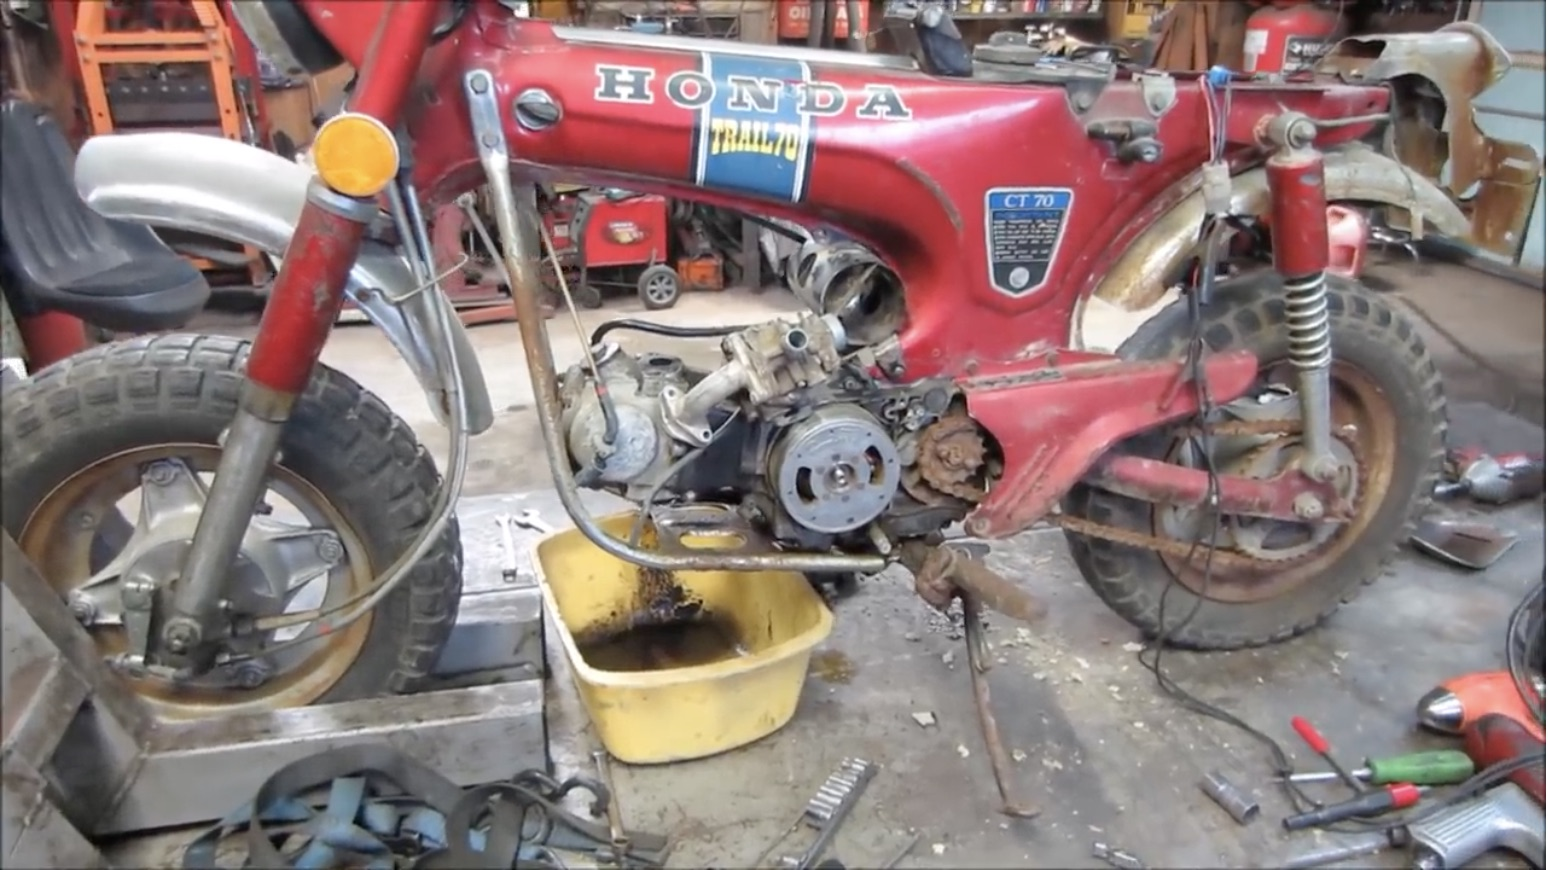 The Honda Trail 70 Revival: Clearing Out The Fuel System And Seeing If It Will Run